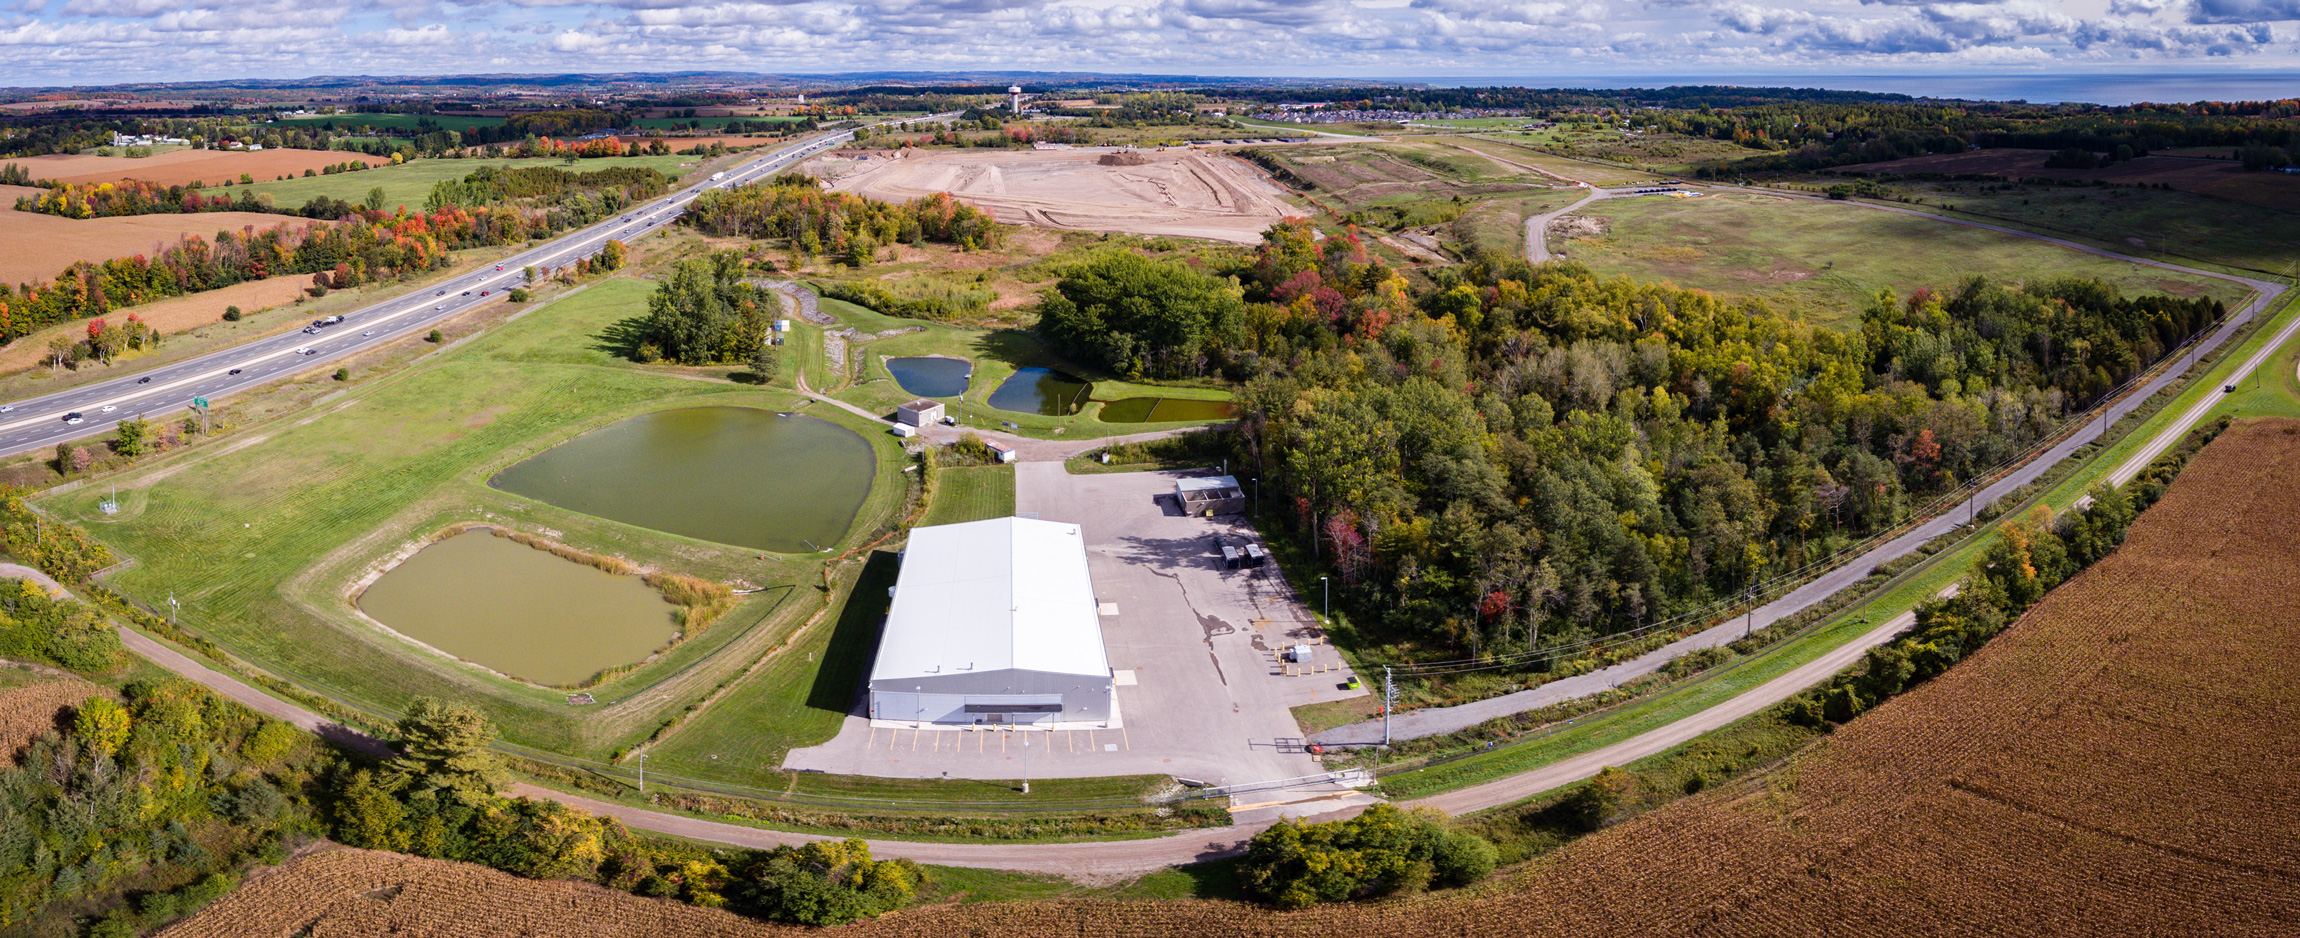 The water treatment facility with the long-term storage site in the background. (Photo by Dylan Neild)